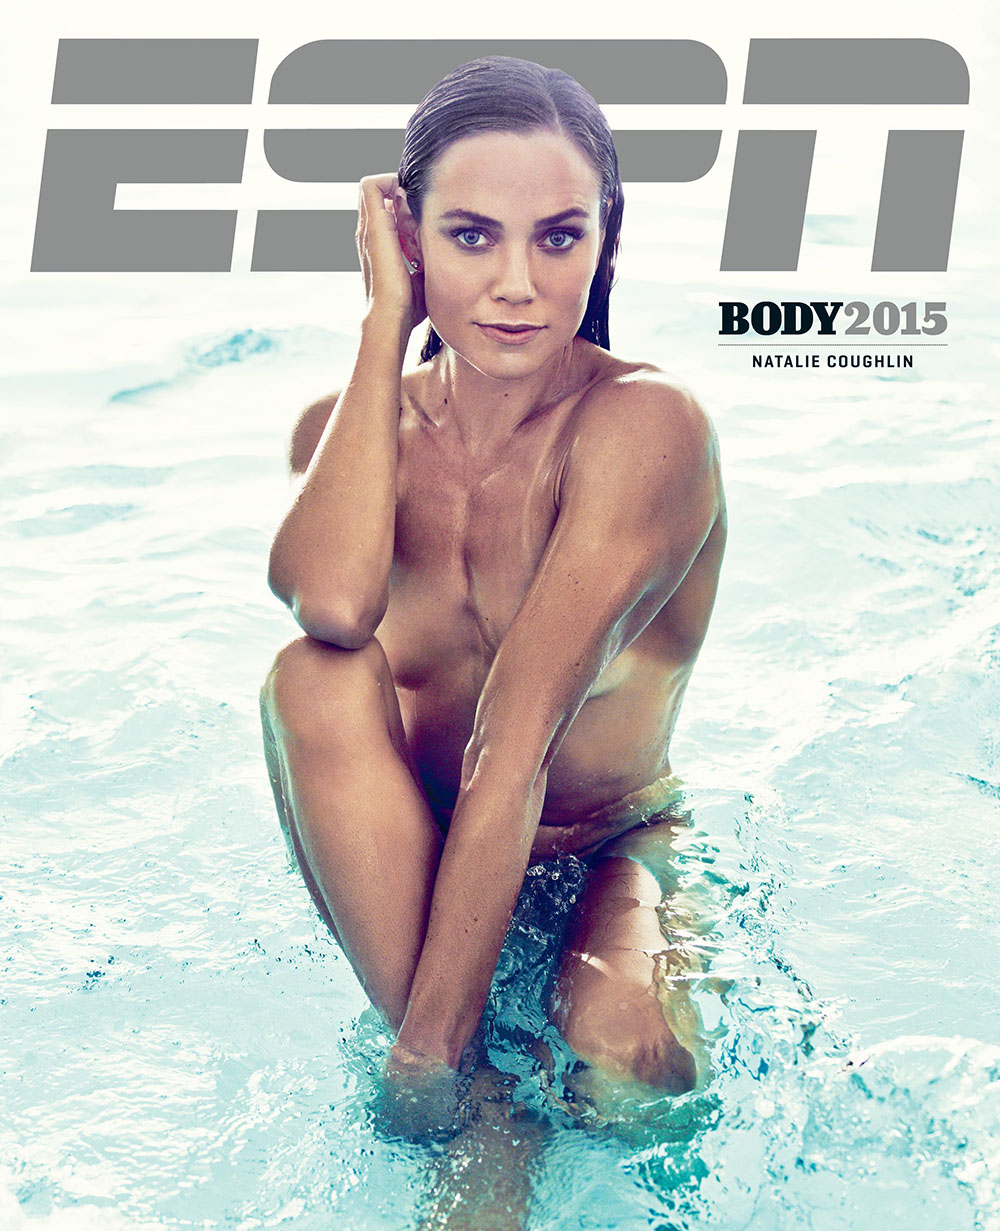 Photography News - Stunning sporty nudes by ESPN Natalie Coughlin photographed by Williams + Hirakawa